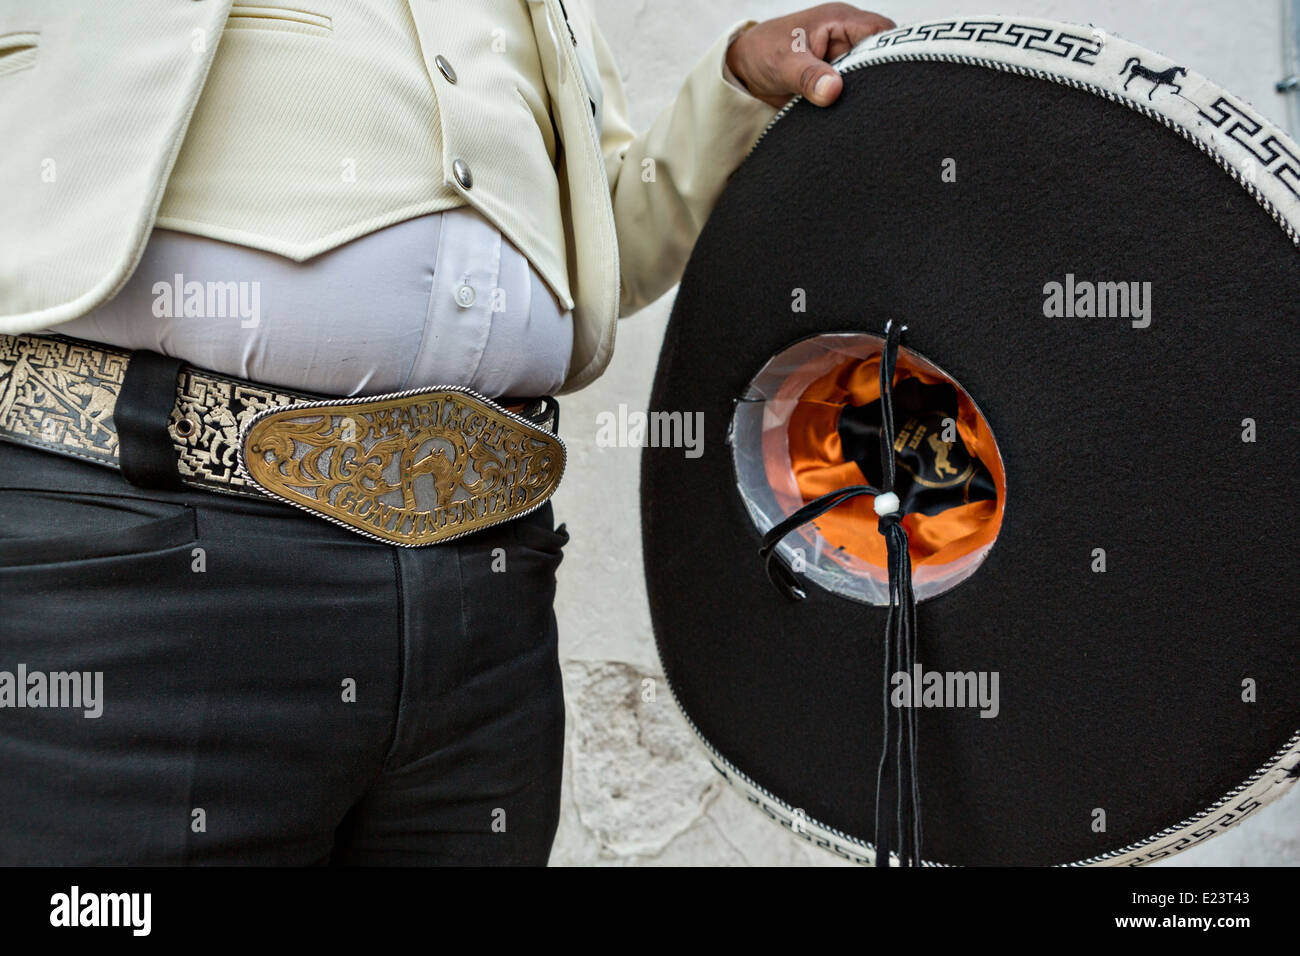 Cowboy belt buckle and sombrero of a Mexican mariachi dressed in  traditional charro costume November 5 7d5ec42920d